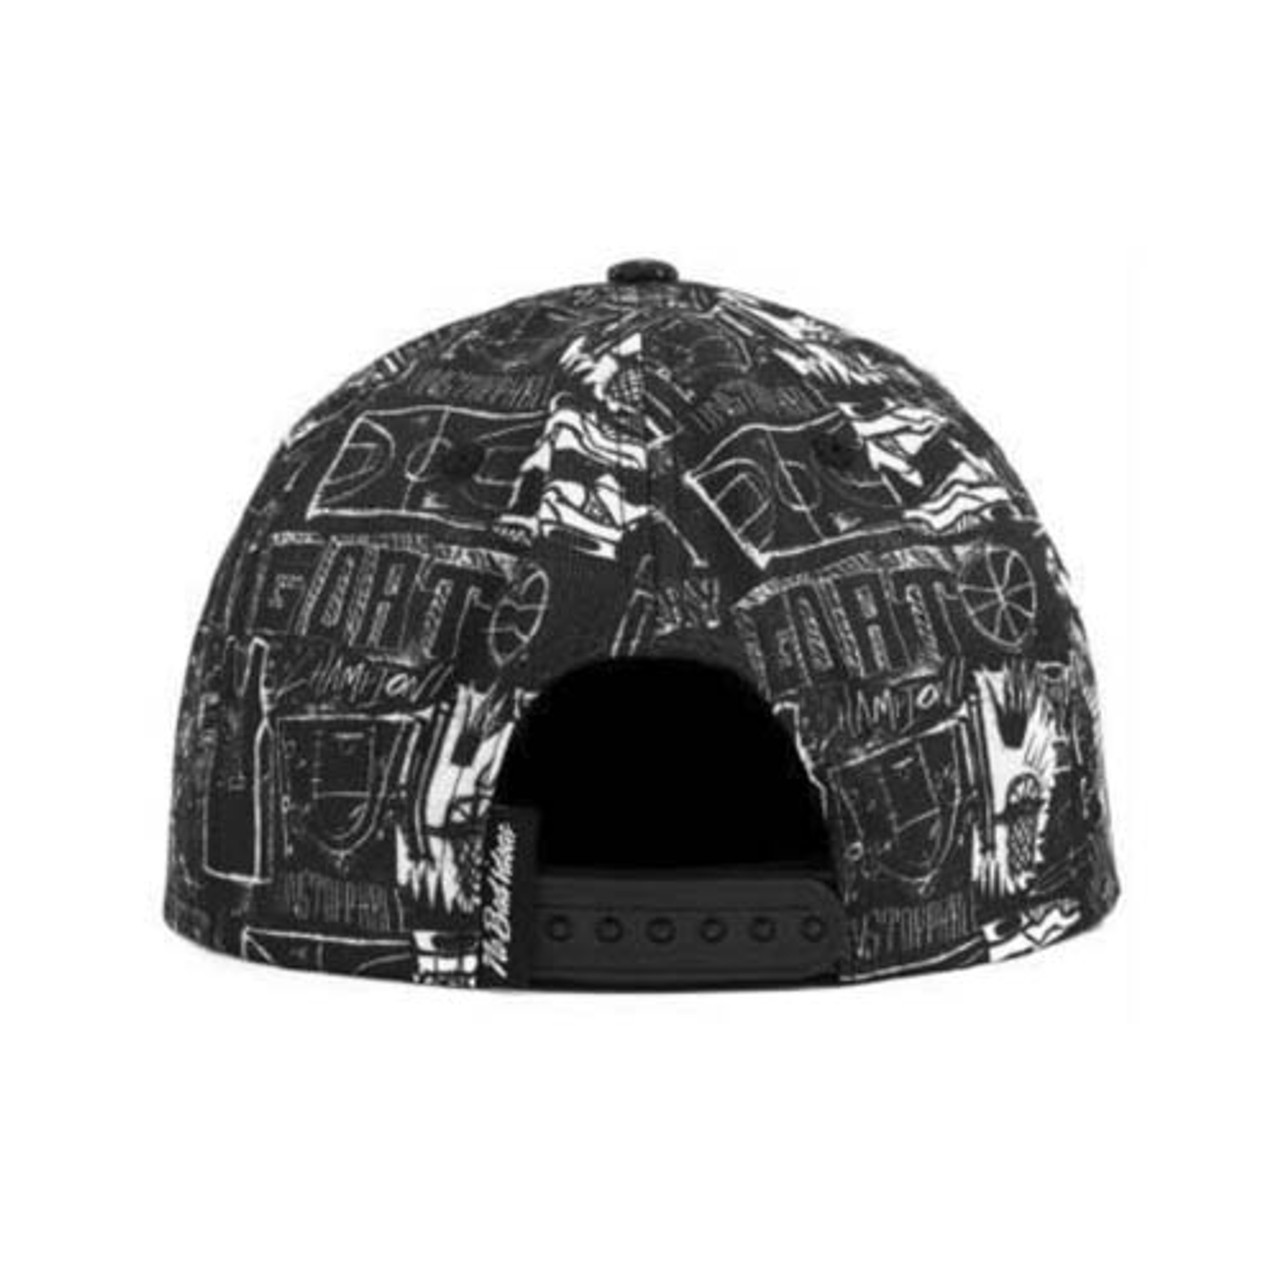 No Bad Ideas - Snapback Cap - Hoop Dreams (Black/Hoops)